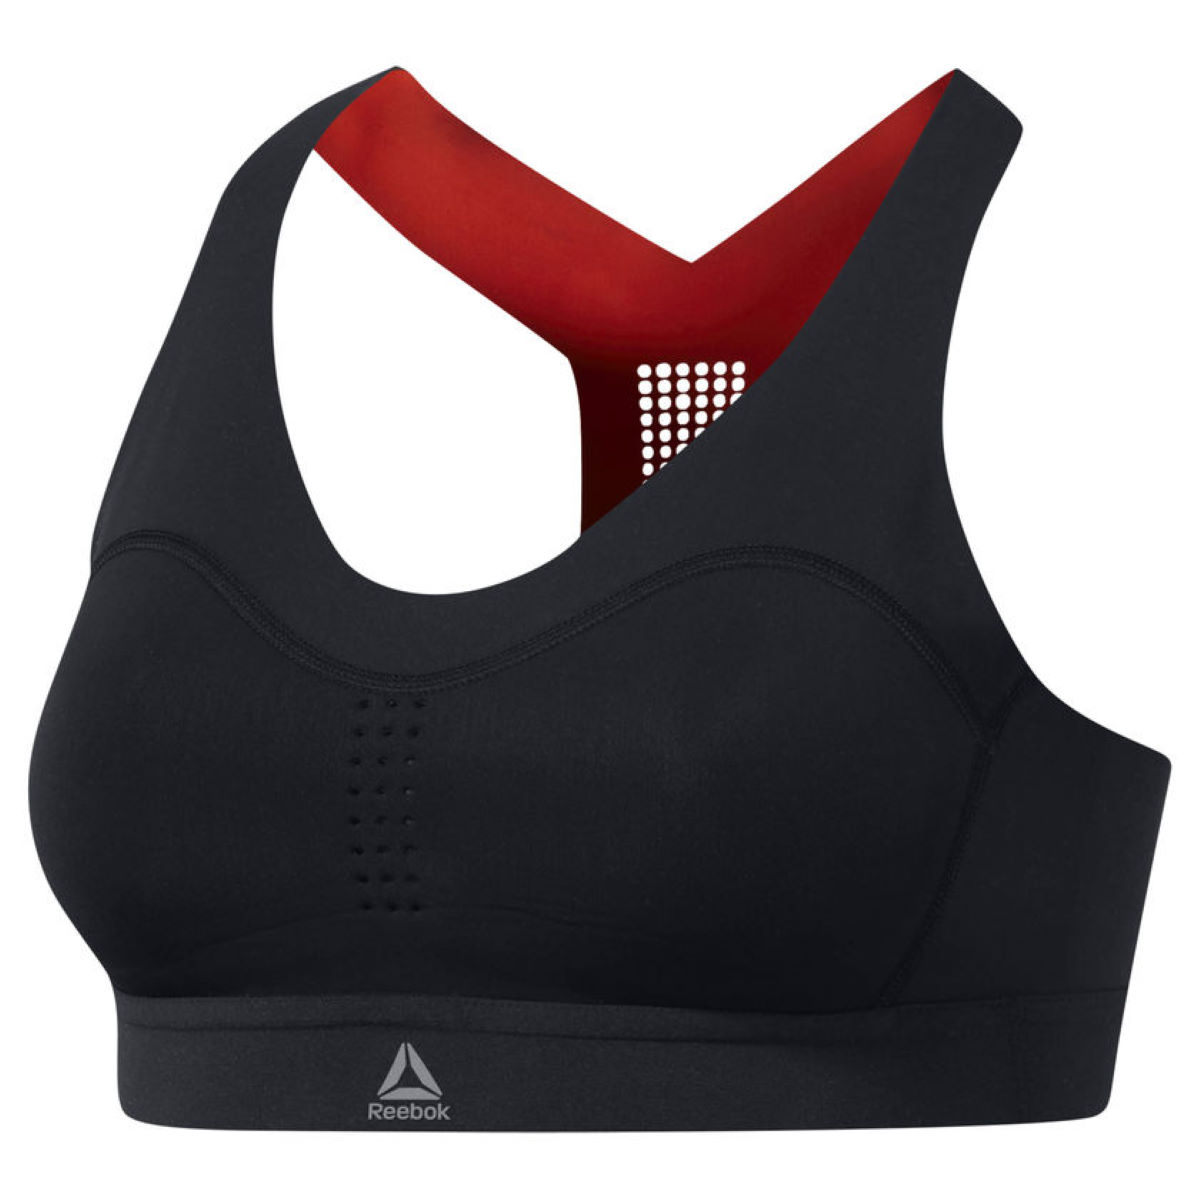 Reebok Reebok Pure Move Sports Bra   Sports Bras